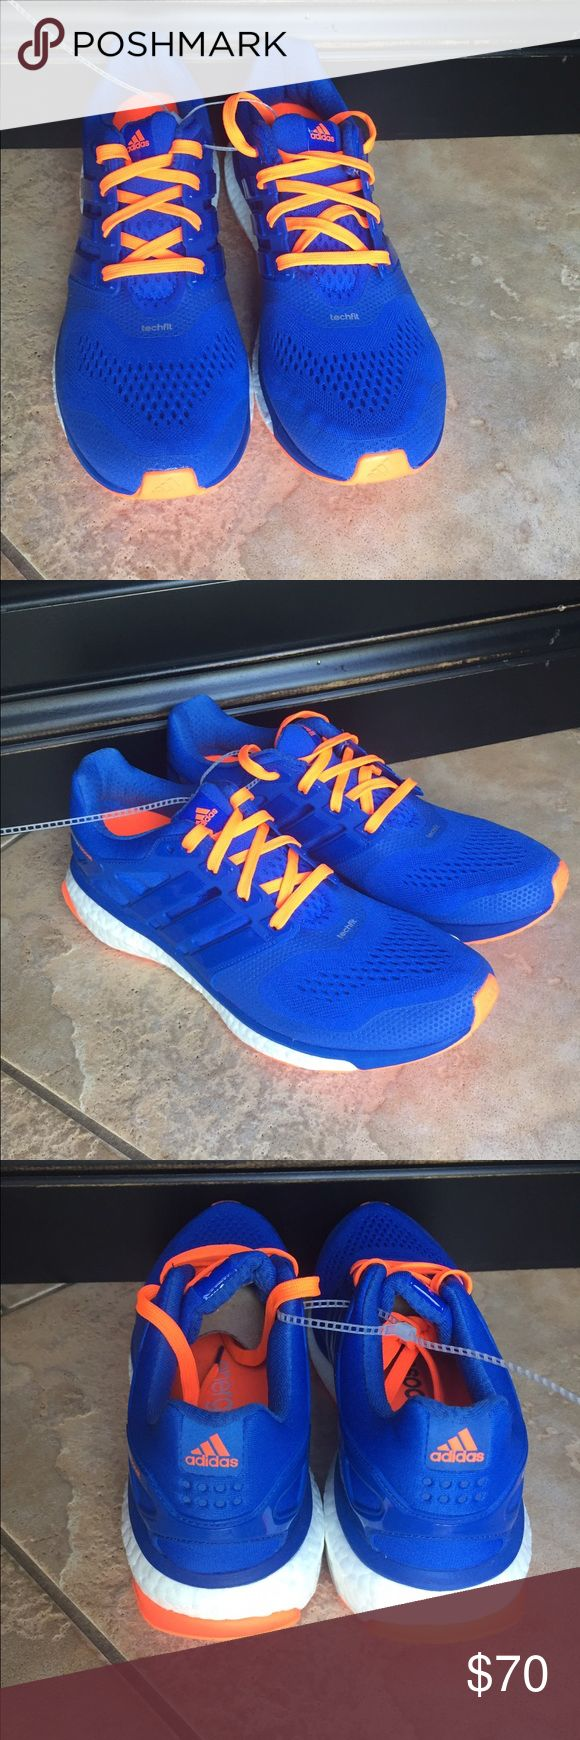 Adidas energy boost shoes Men's adidas shoes Adidas Shoes Athletic Shoes